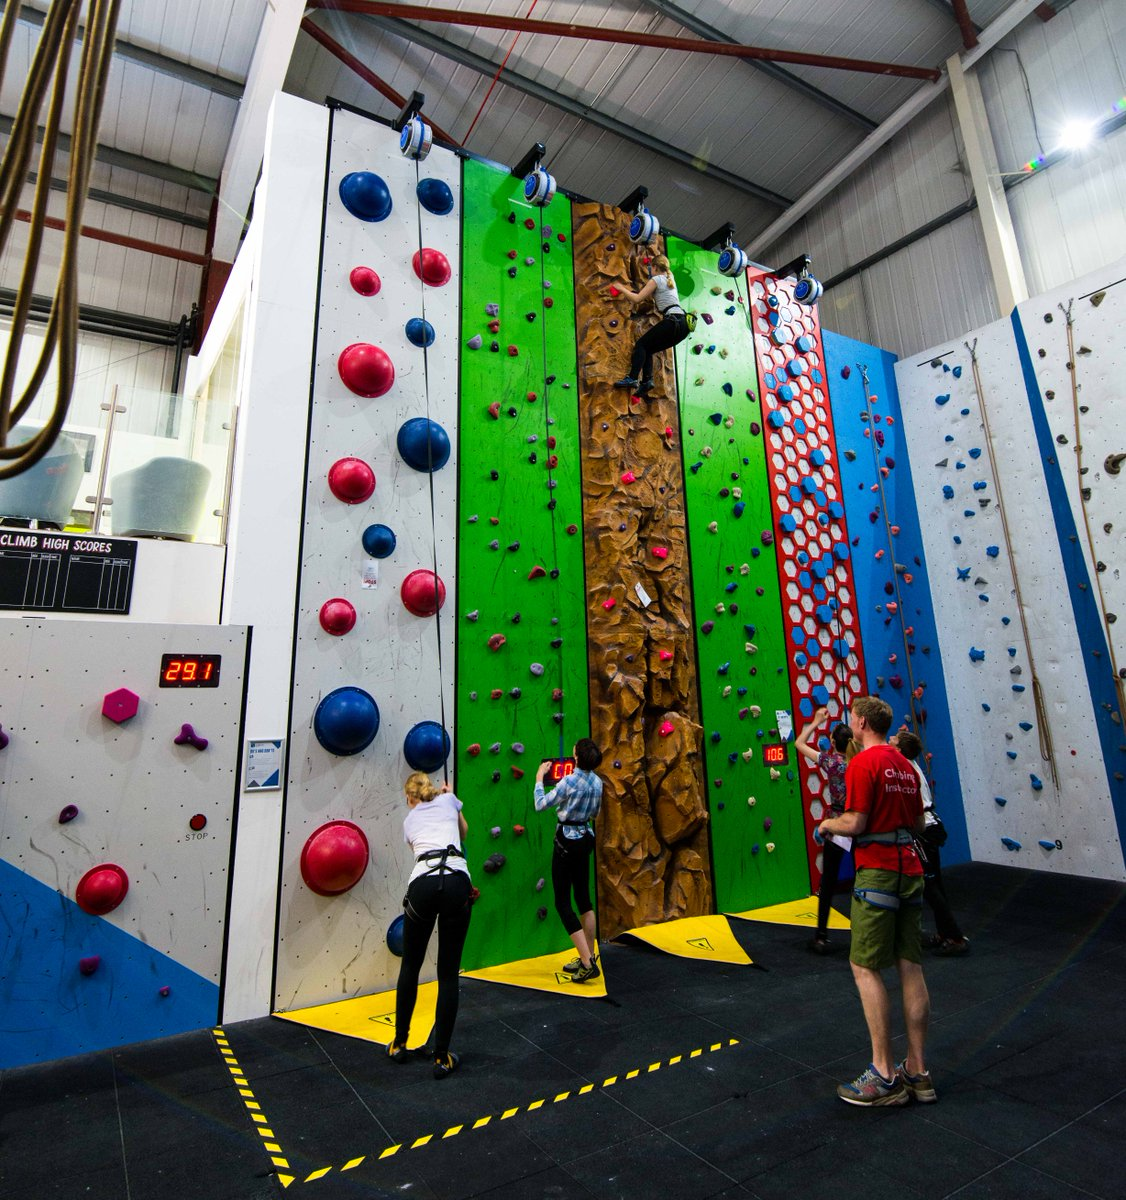 Child&#39;s birthday coming up? Check out awesome Rock Box challenges! #brighton #parties #climbing  http:// ow.ly/KkIY30fgwHs  &nbsp;   #mums @innearsussex<br>http://pic.twitter.com/tFGKHYGQXo